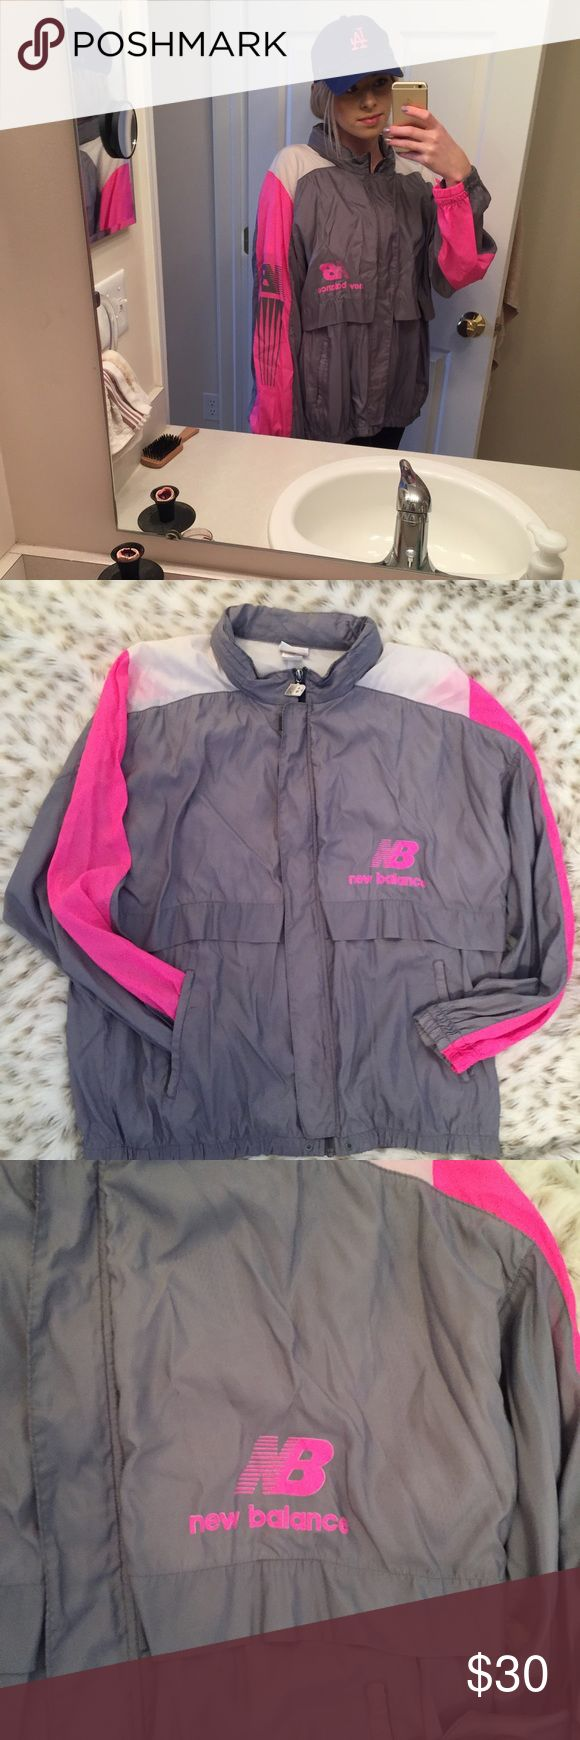 Vintage New Balance Windbreaker pink and gray Vintage new balance windbreaker! Pink, gray, and white! Size large! So cute!!! In great condition!! No stains! New Balance Jackets & Coats